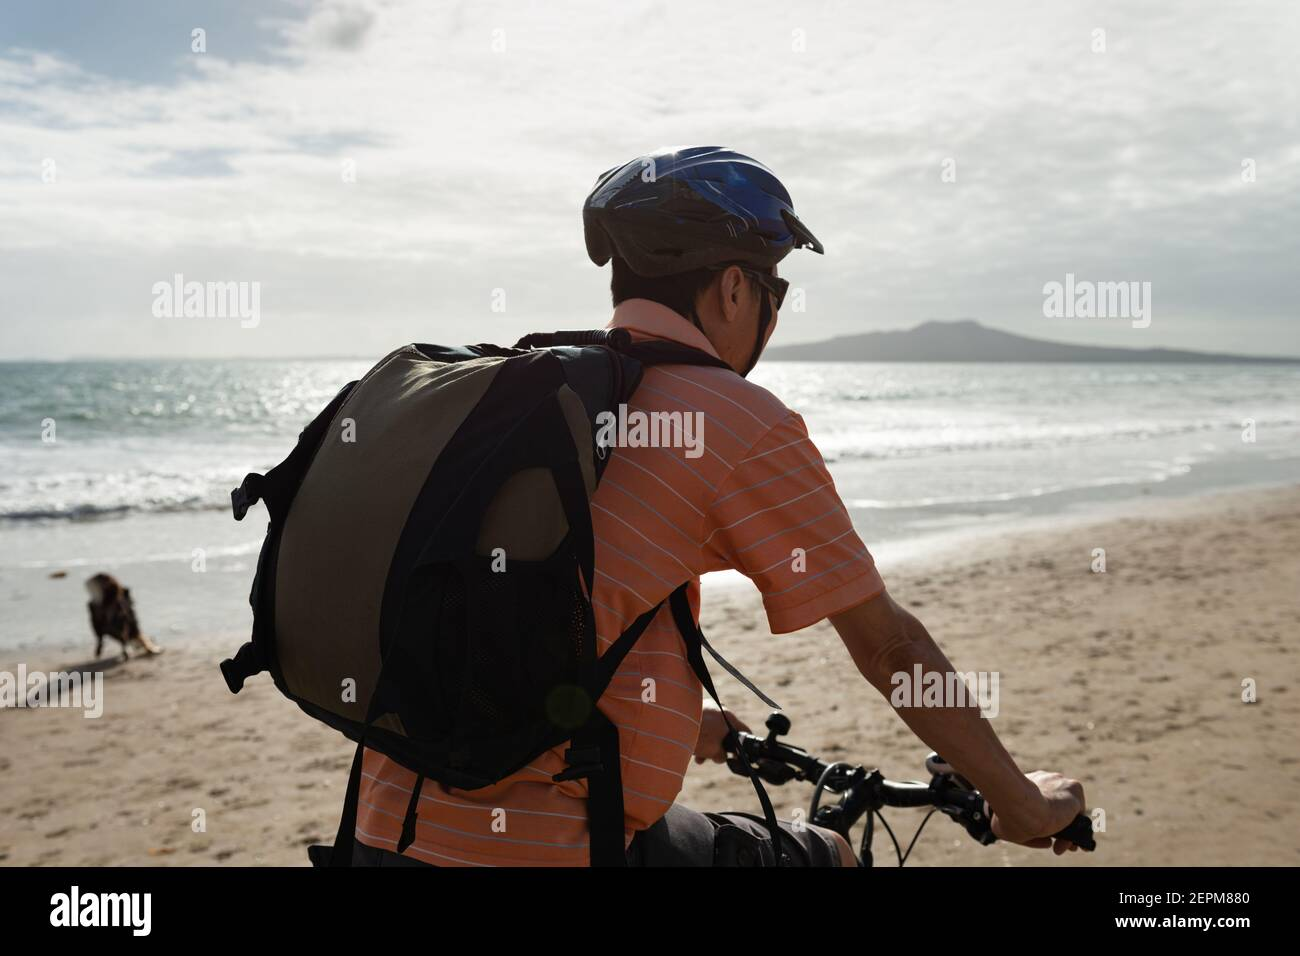 A cyclist riding along Milford beach with Rangitoto Island in the background and a dog playing on the beach Stock Photo